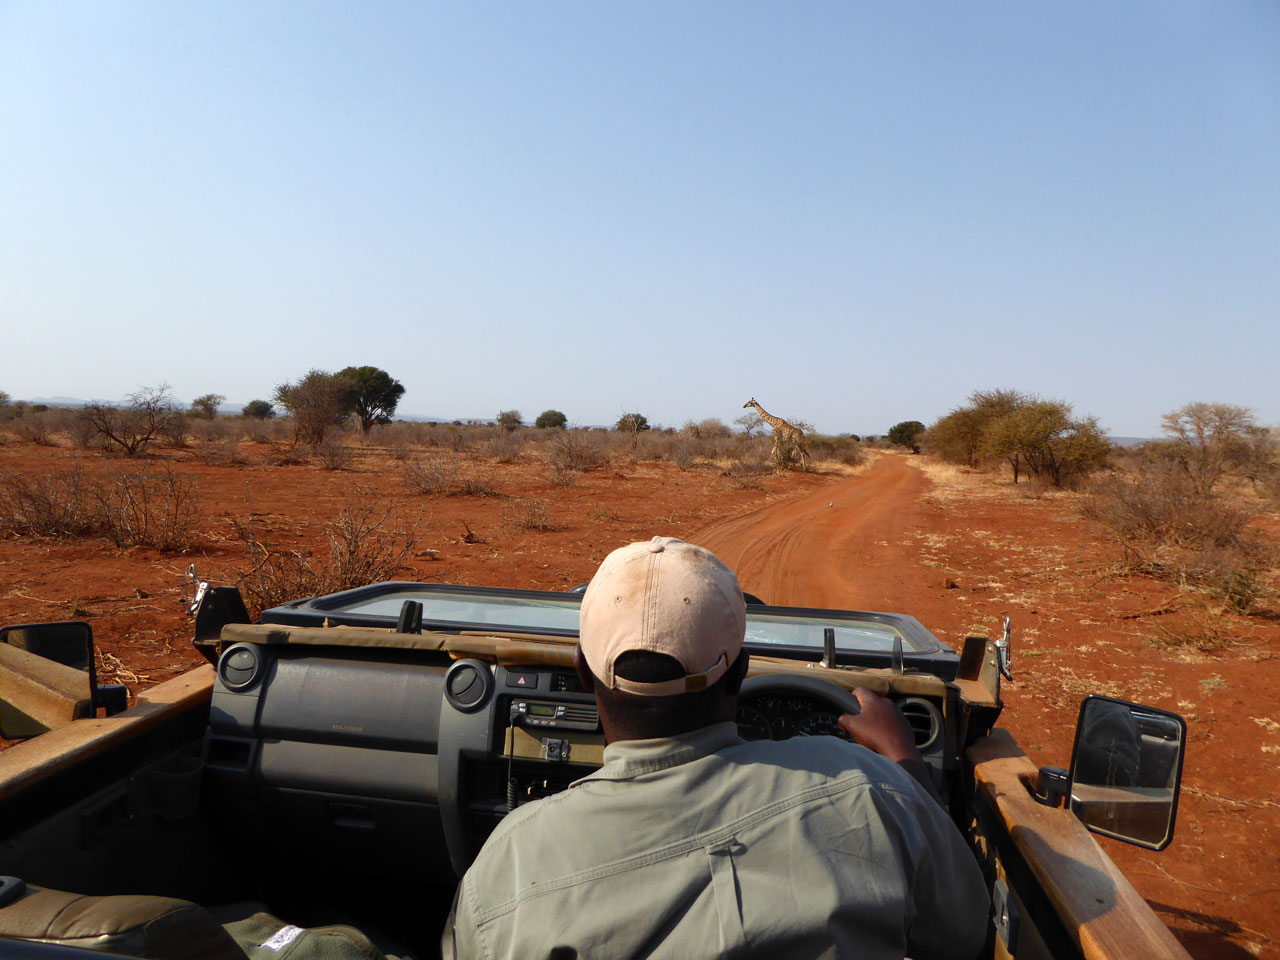 On safari in Madikwe Game Reserve, South Africa